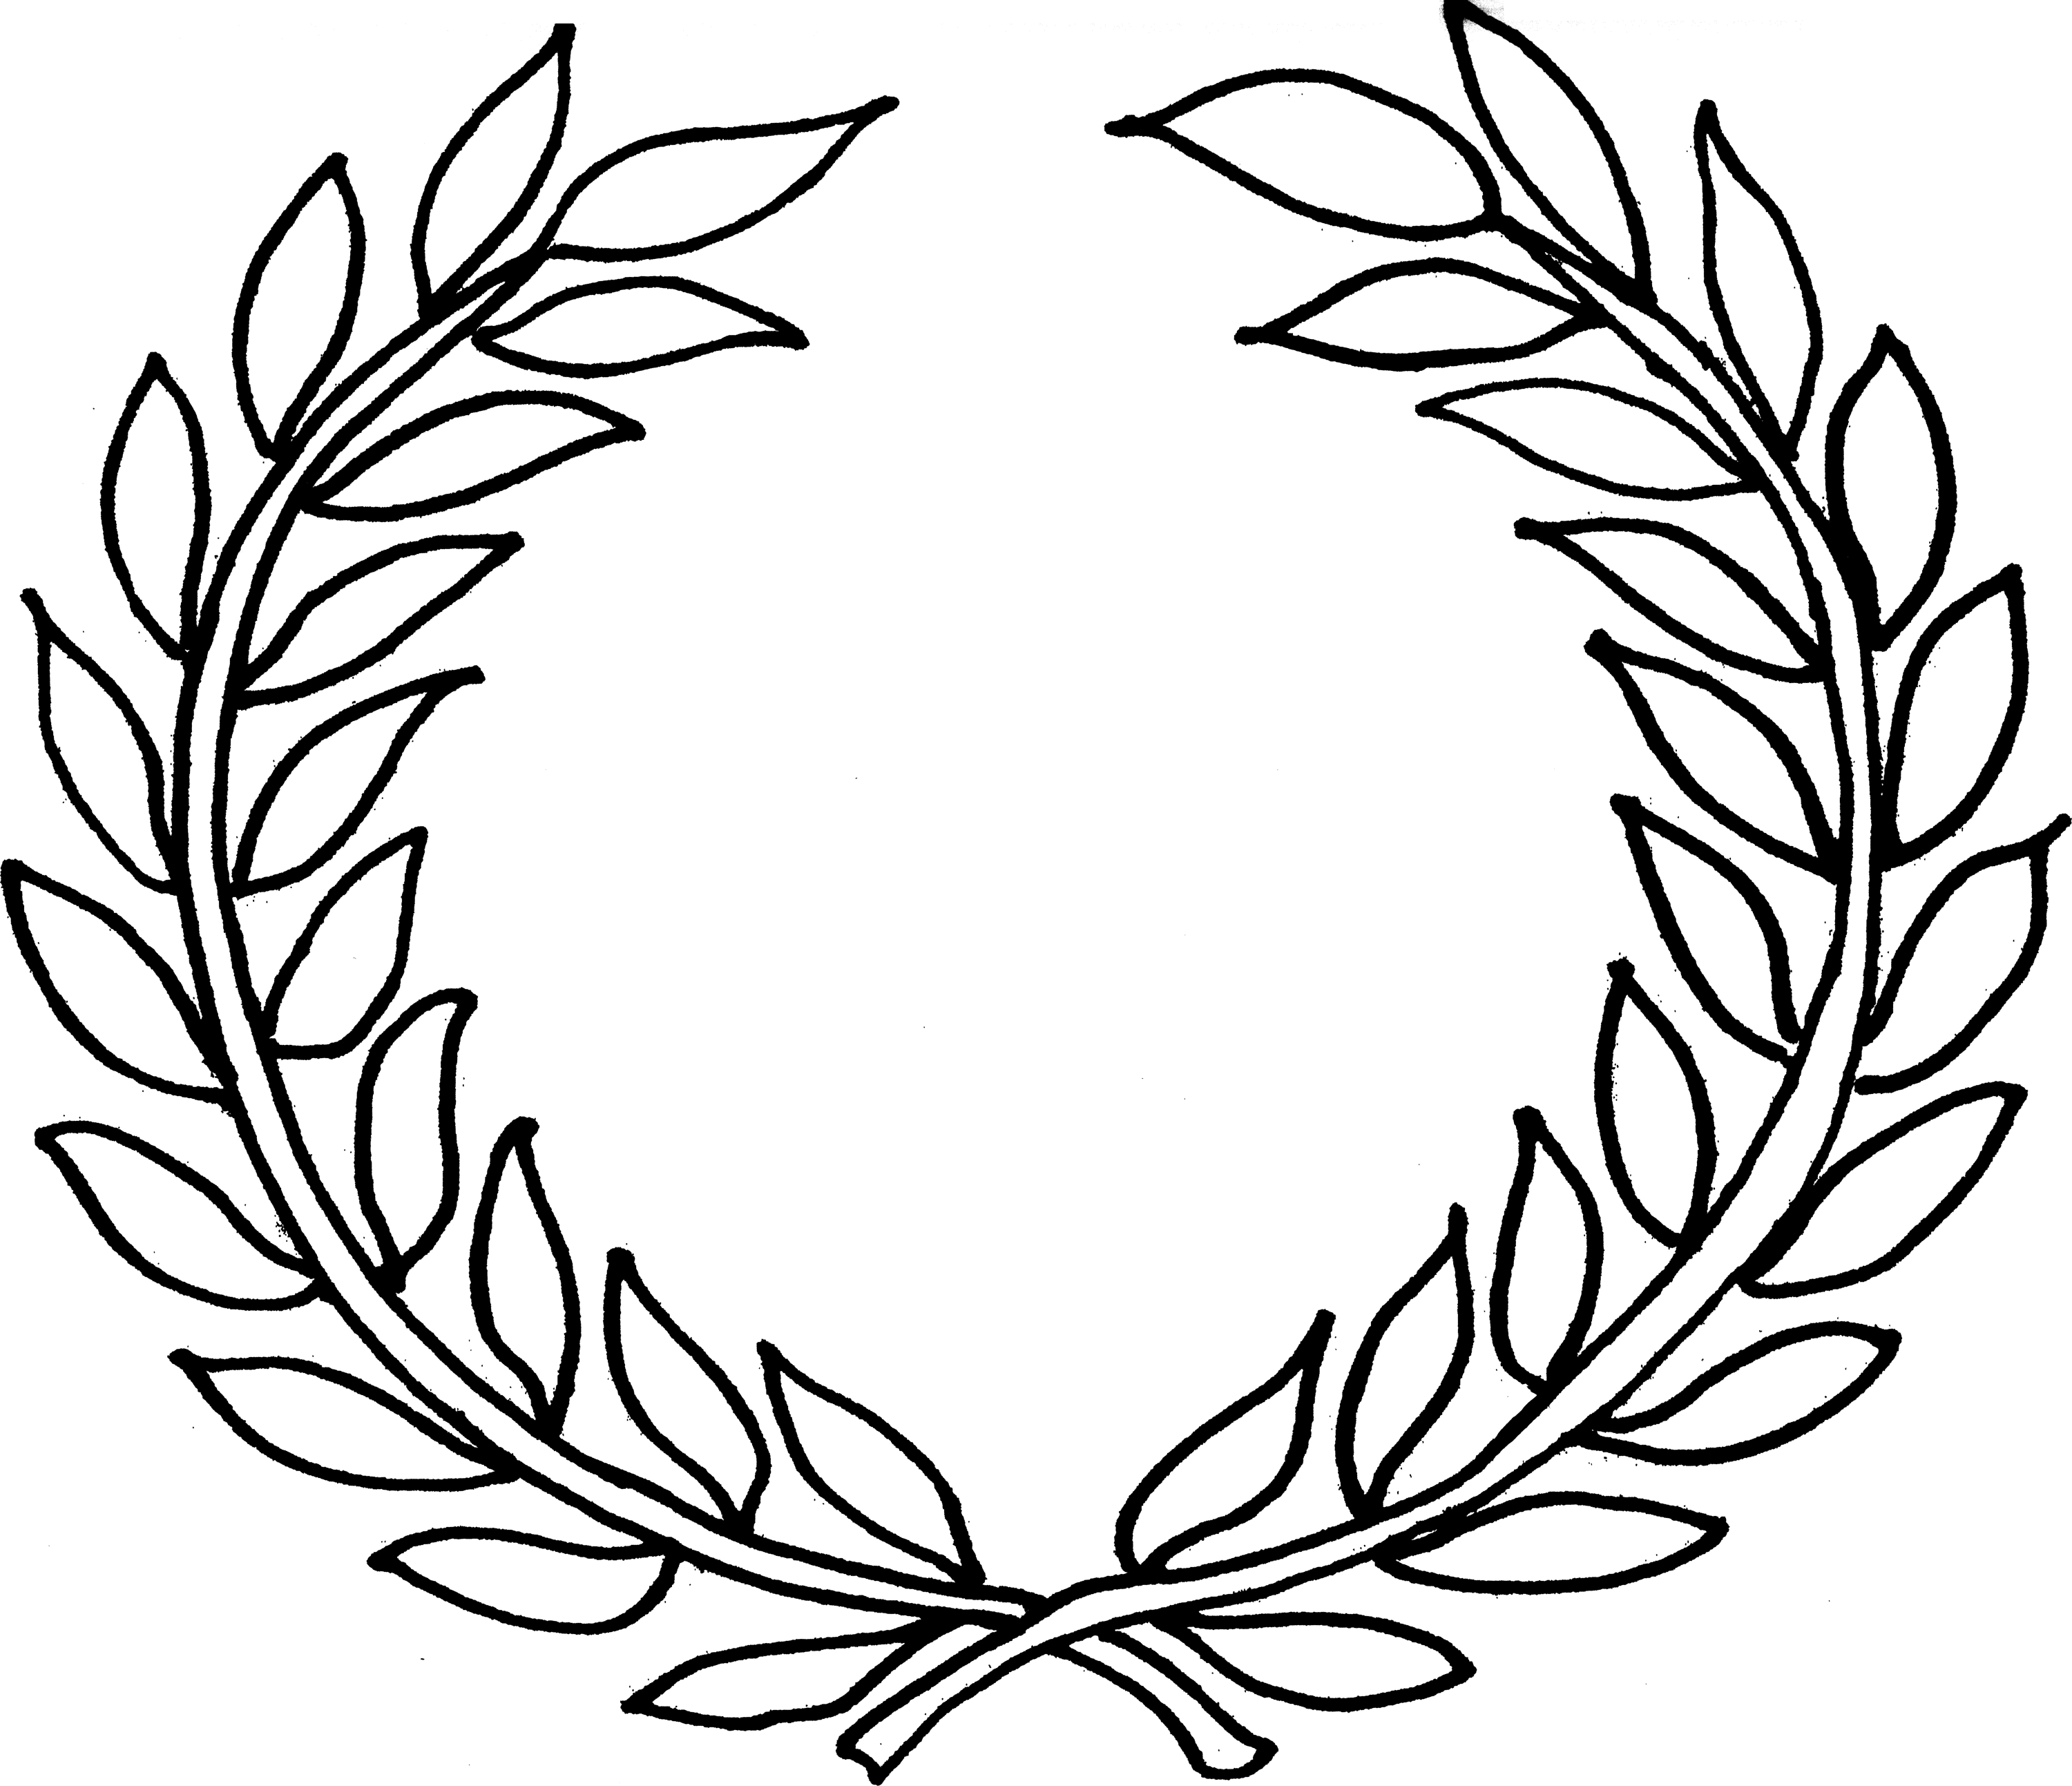 Tattoo borders designs cliparts co - Laurel Wreath Clipart Cliparts Co